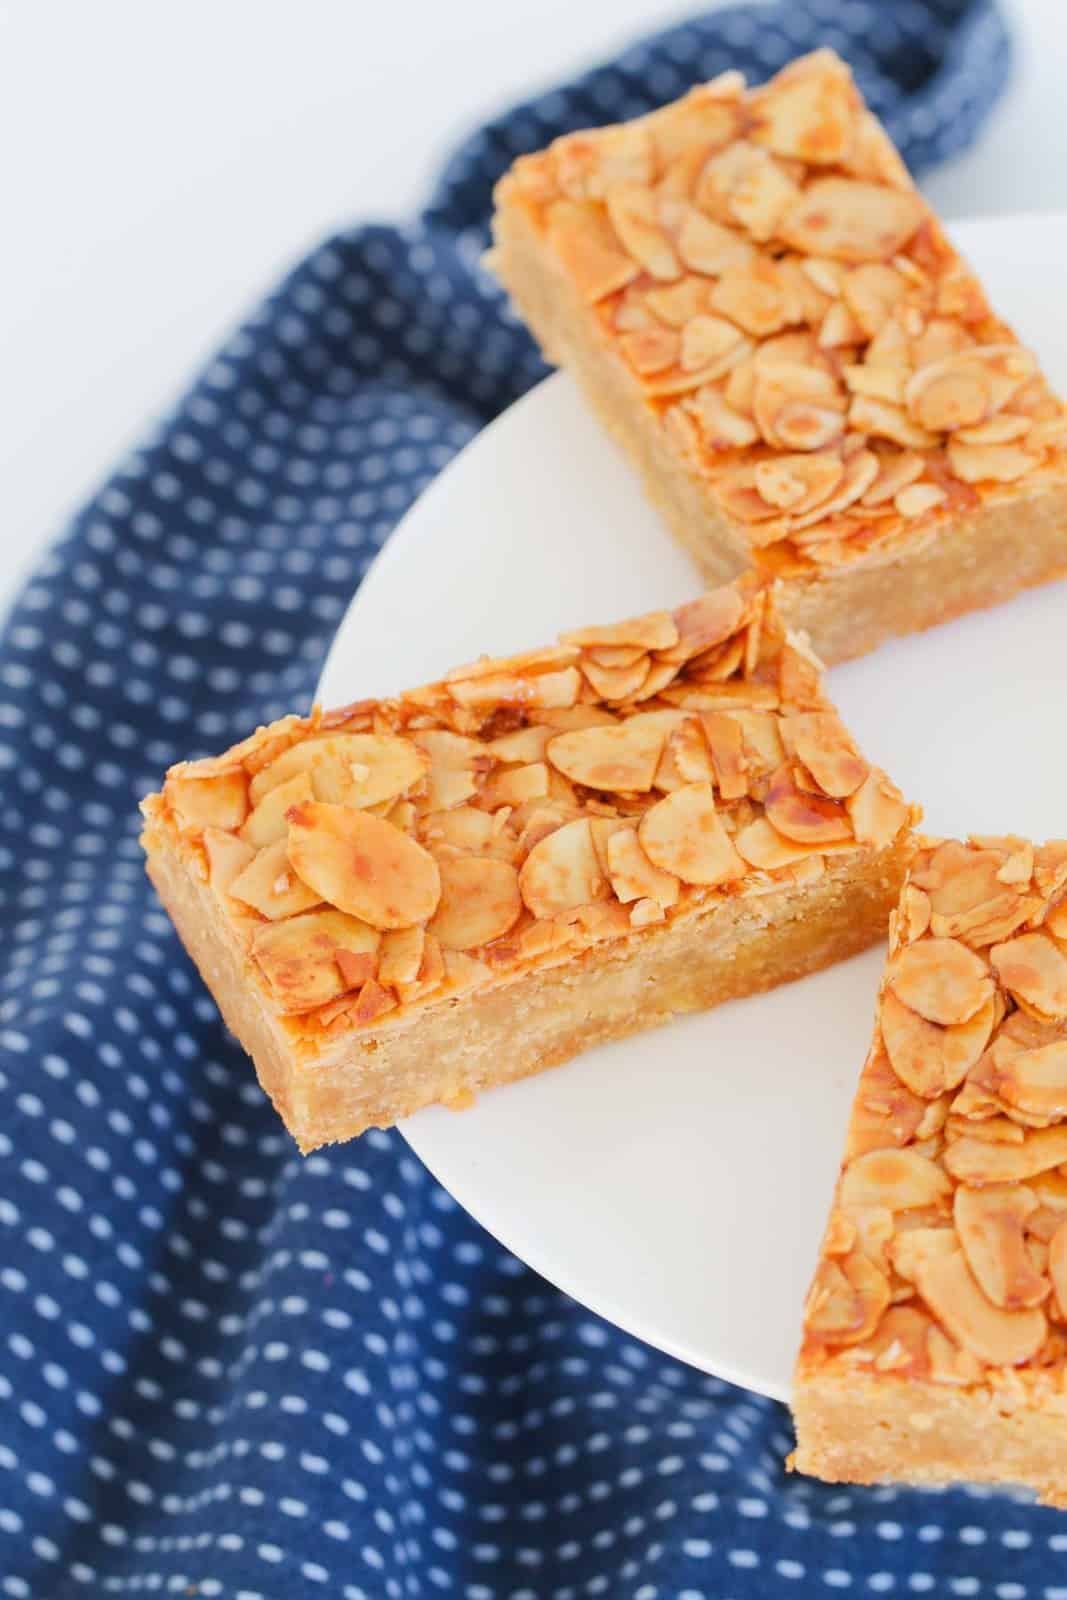 pieces of a slice with a biscuit base topped with flaked almonds on a white plate